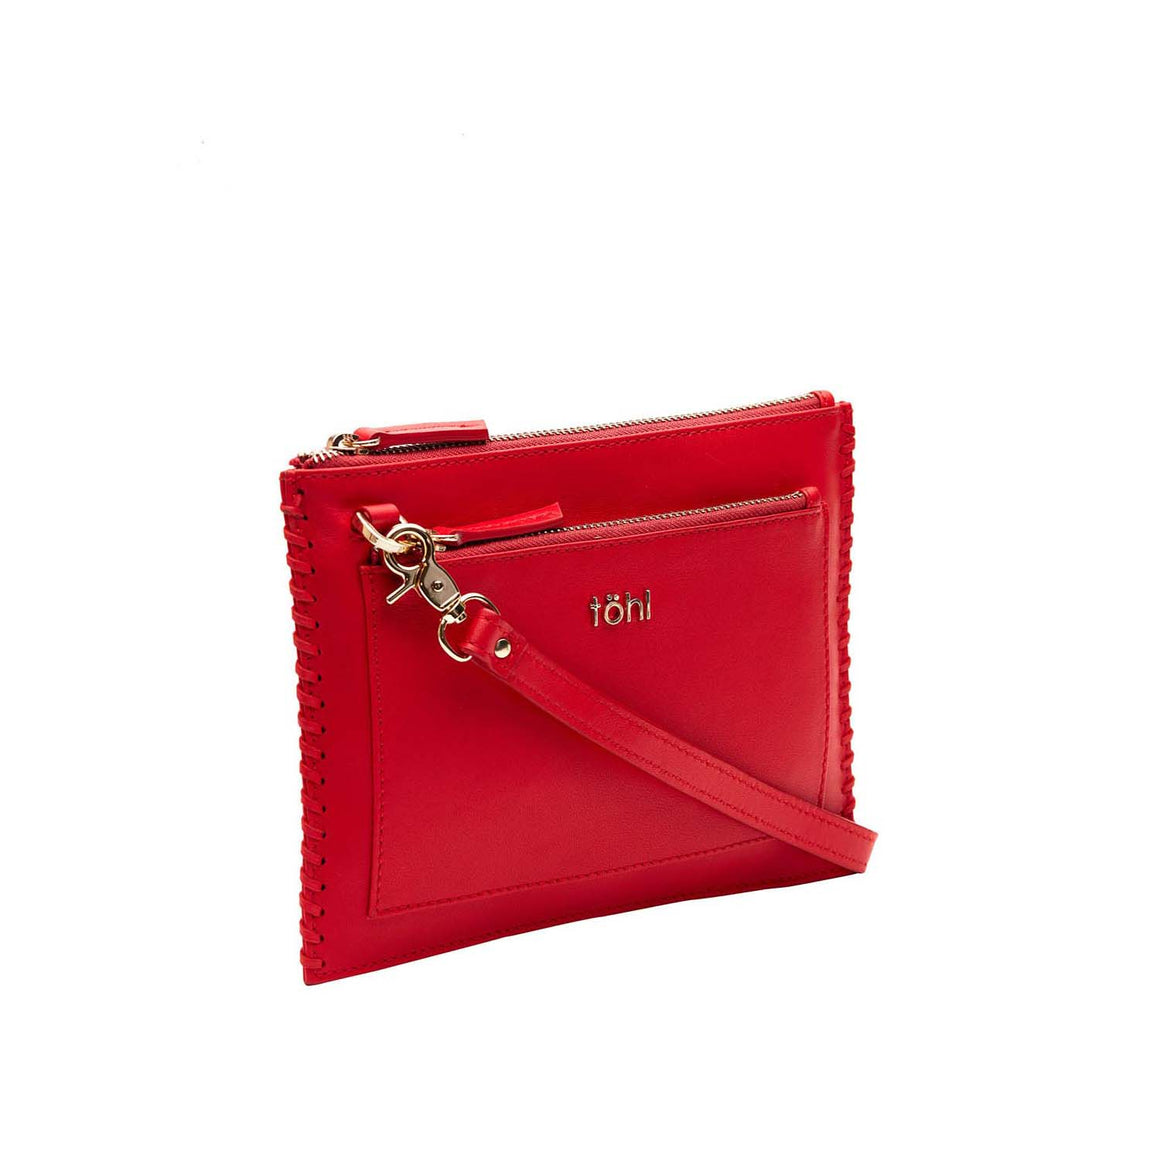 SG 0024 - TOHL ANMER WOMEN'S SLING & CROSSBODY BAG - SPICE RED